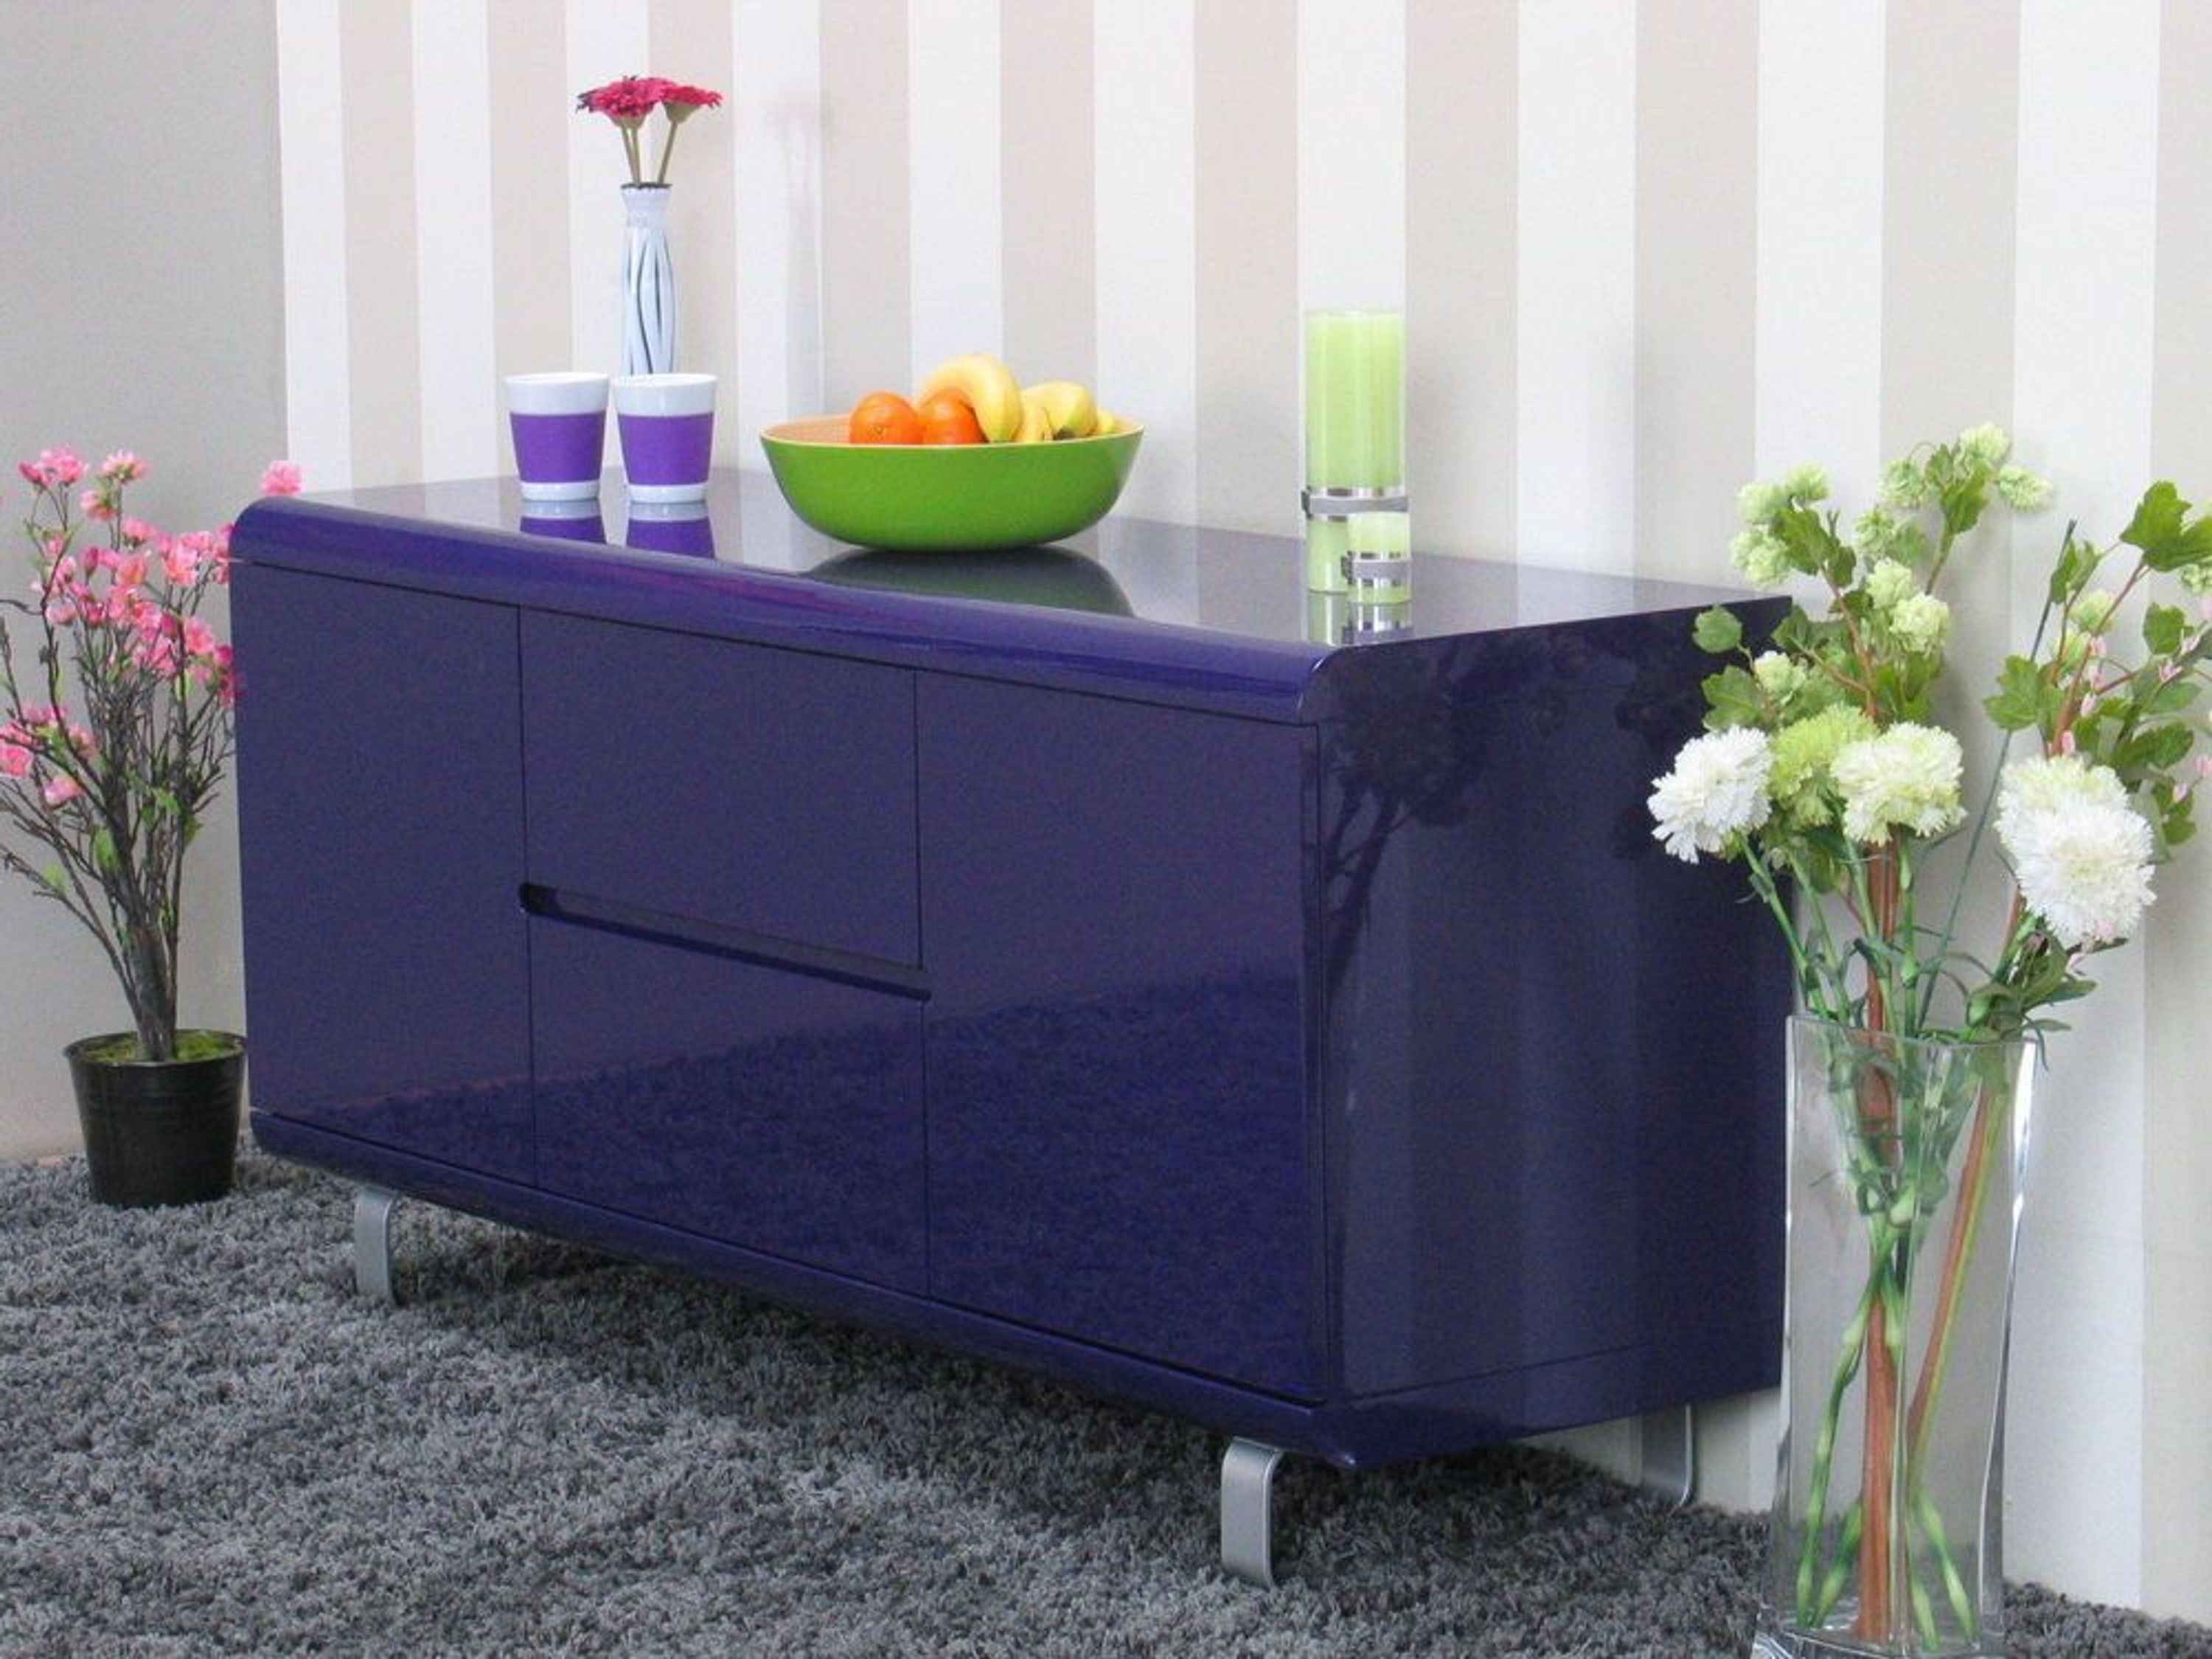 sideboard spacy kommode anrichte schrank lila hochglanz. Black Bedroom Furniture Sets. Home Design Ideas